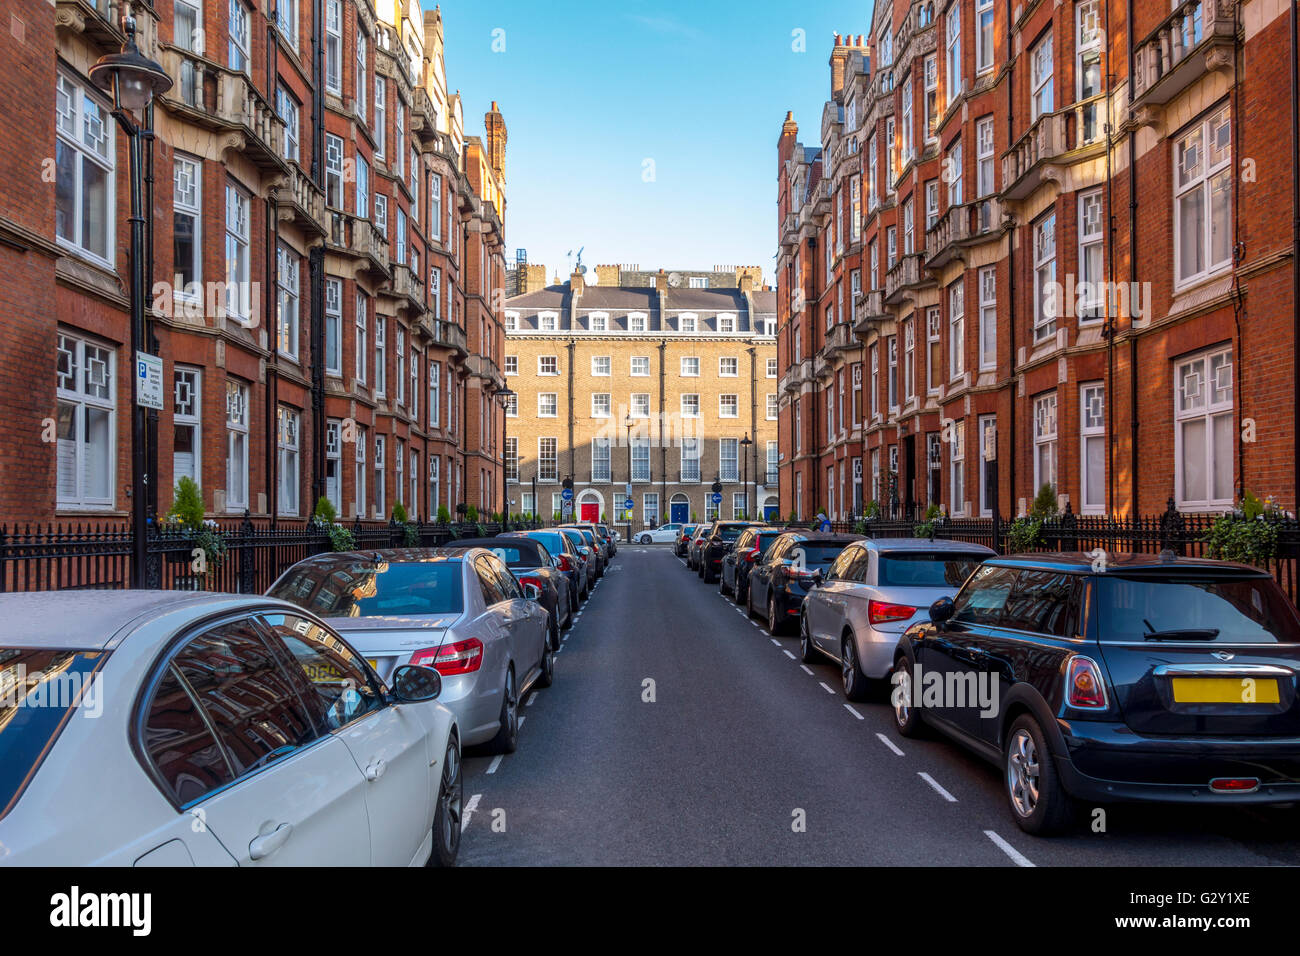 London street with red brick mansion blocks - Stock Image